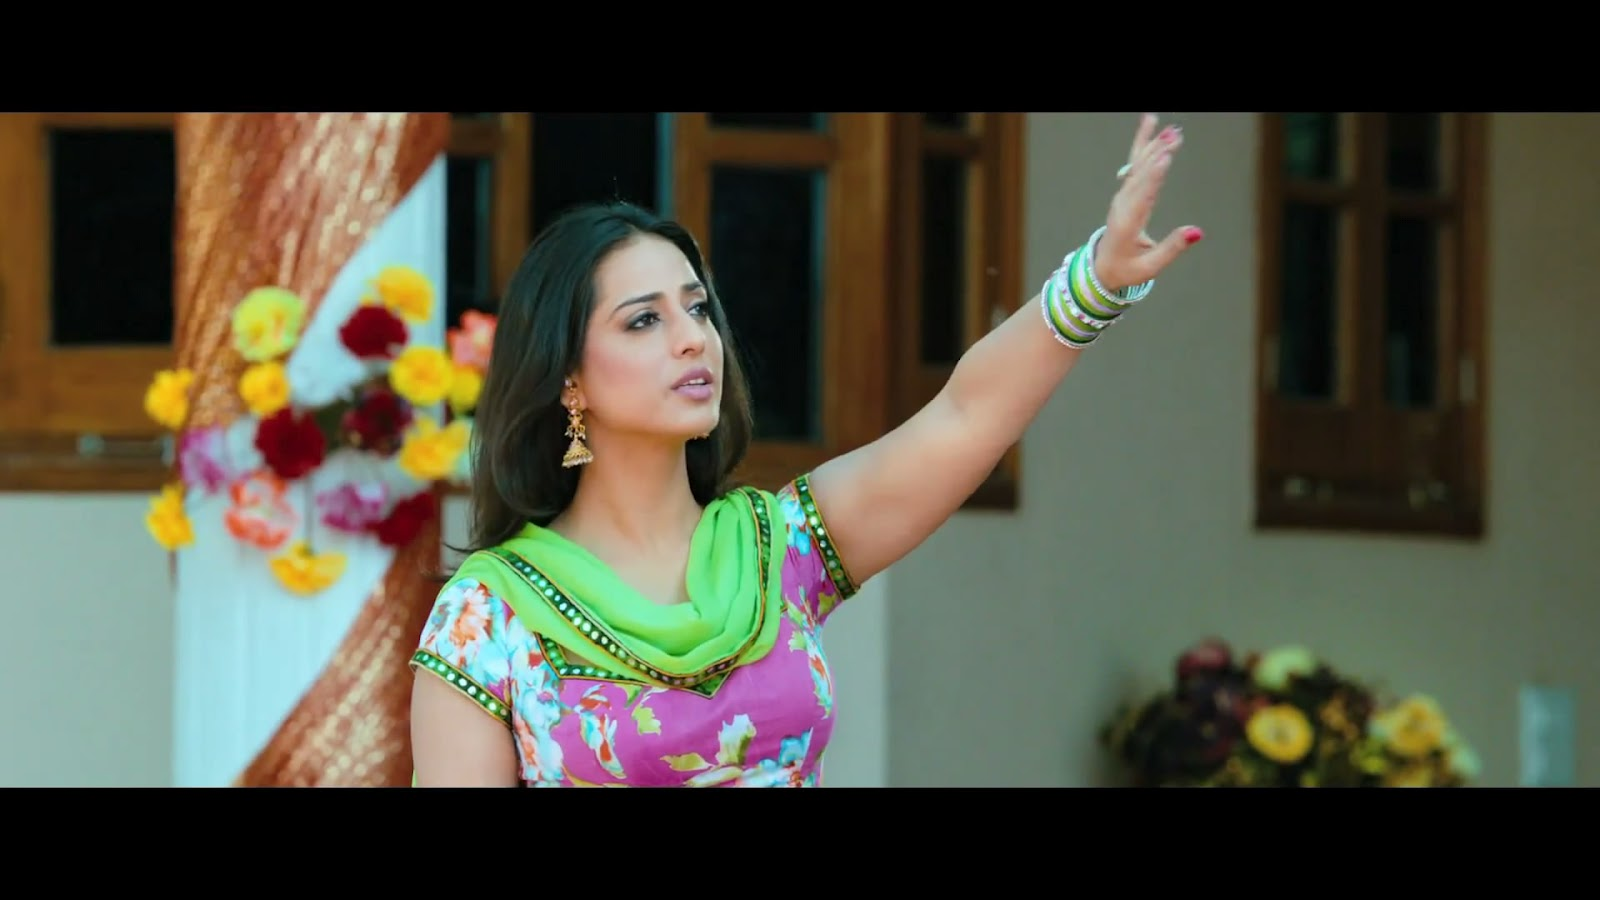 Carry On Jatta 2 full movie download full movies watch